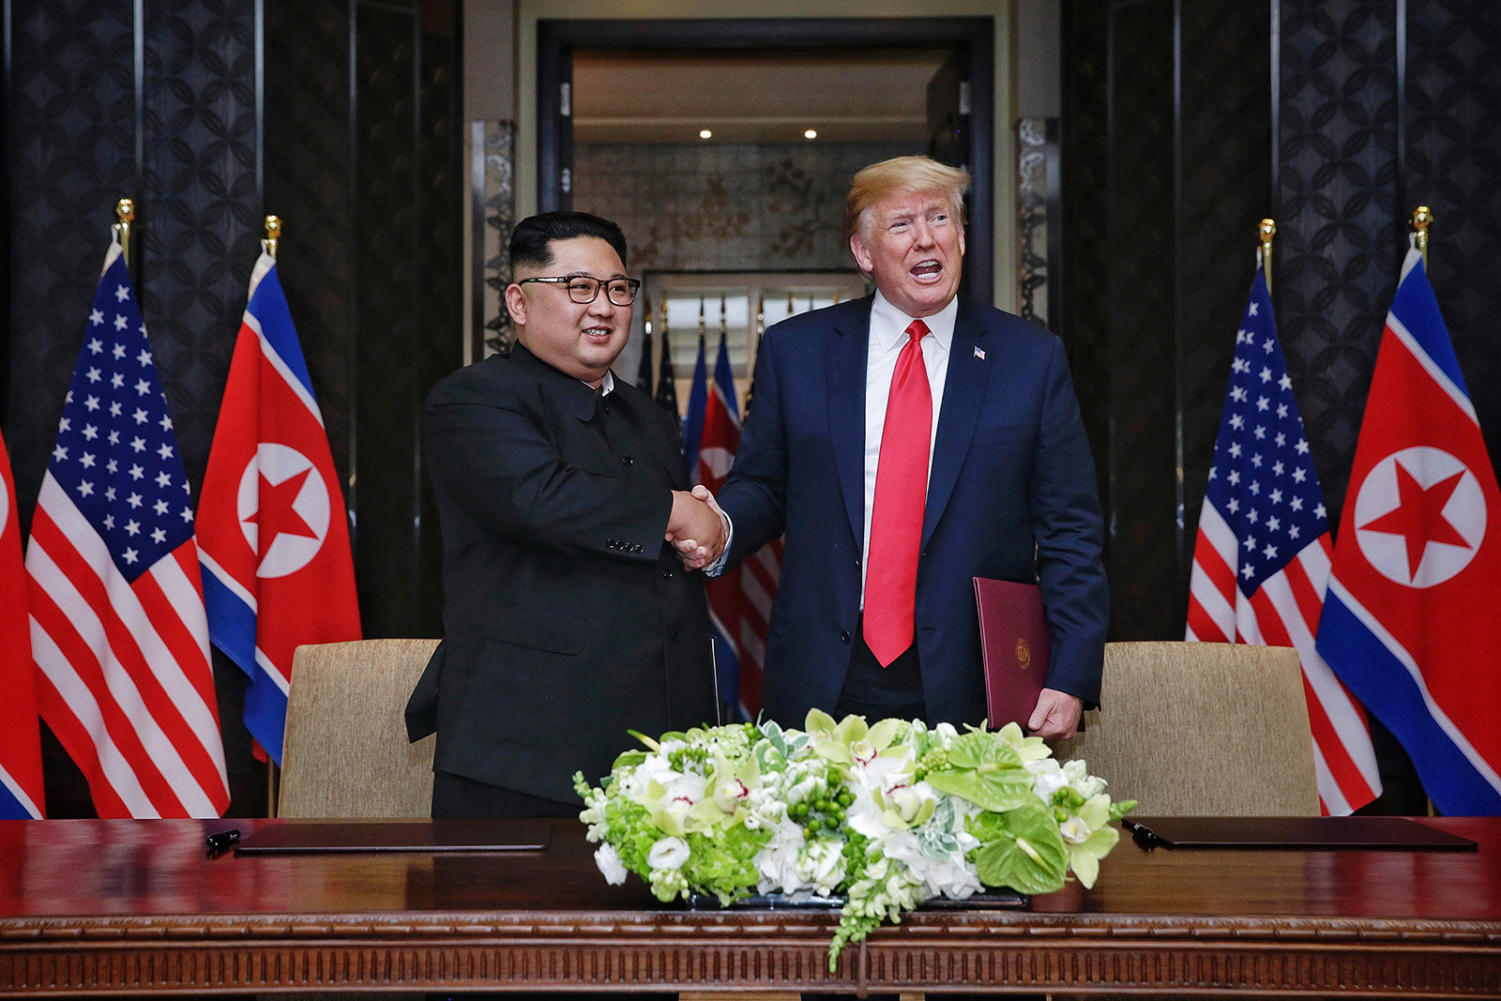 On June 12, 2018, in Singapore, President Donald Trump and North Korean leader Kim Jong Un shake hands after signing an agreement at the Capella Hotel.